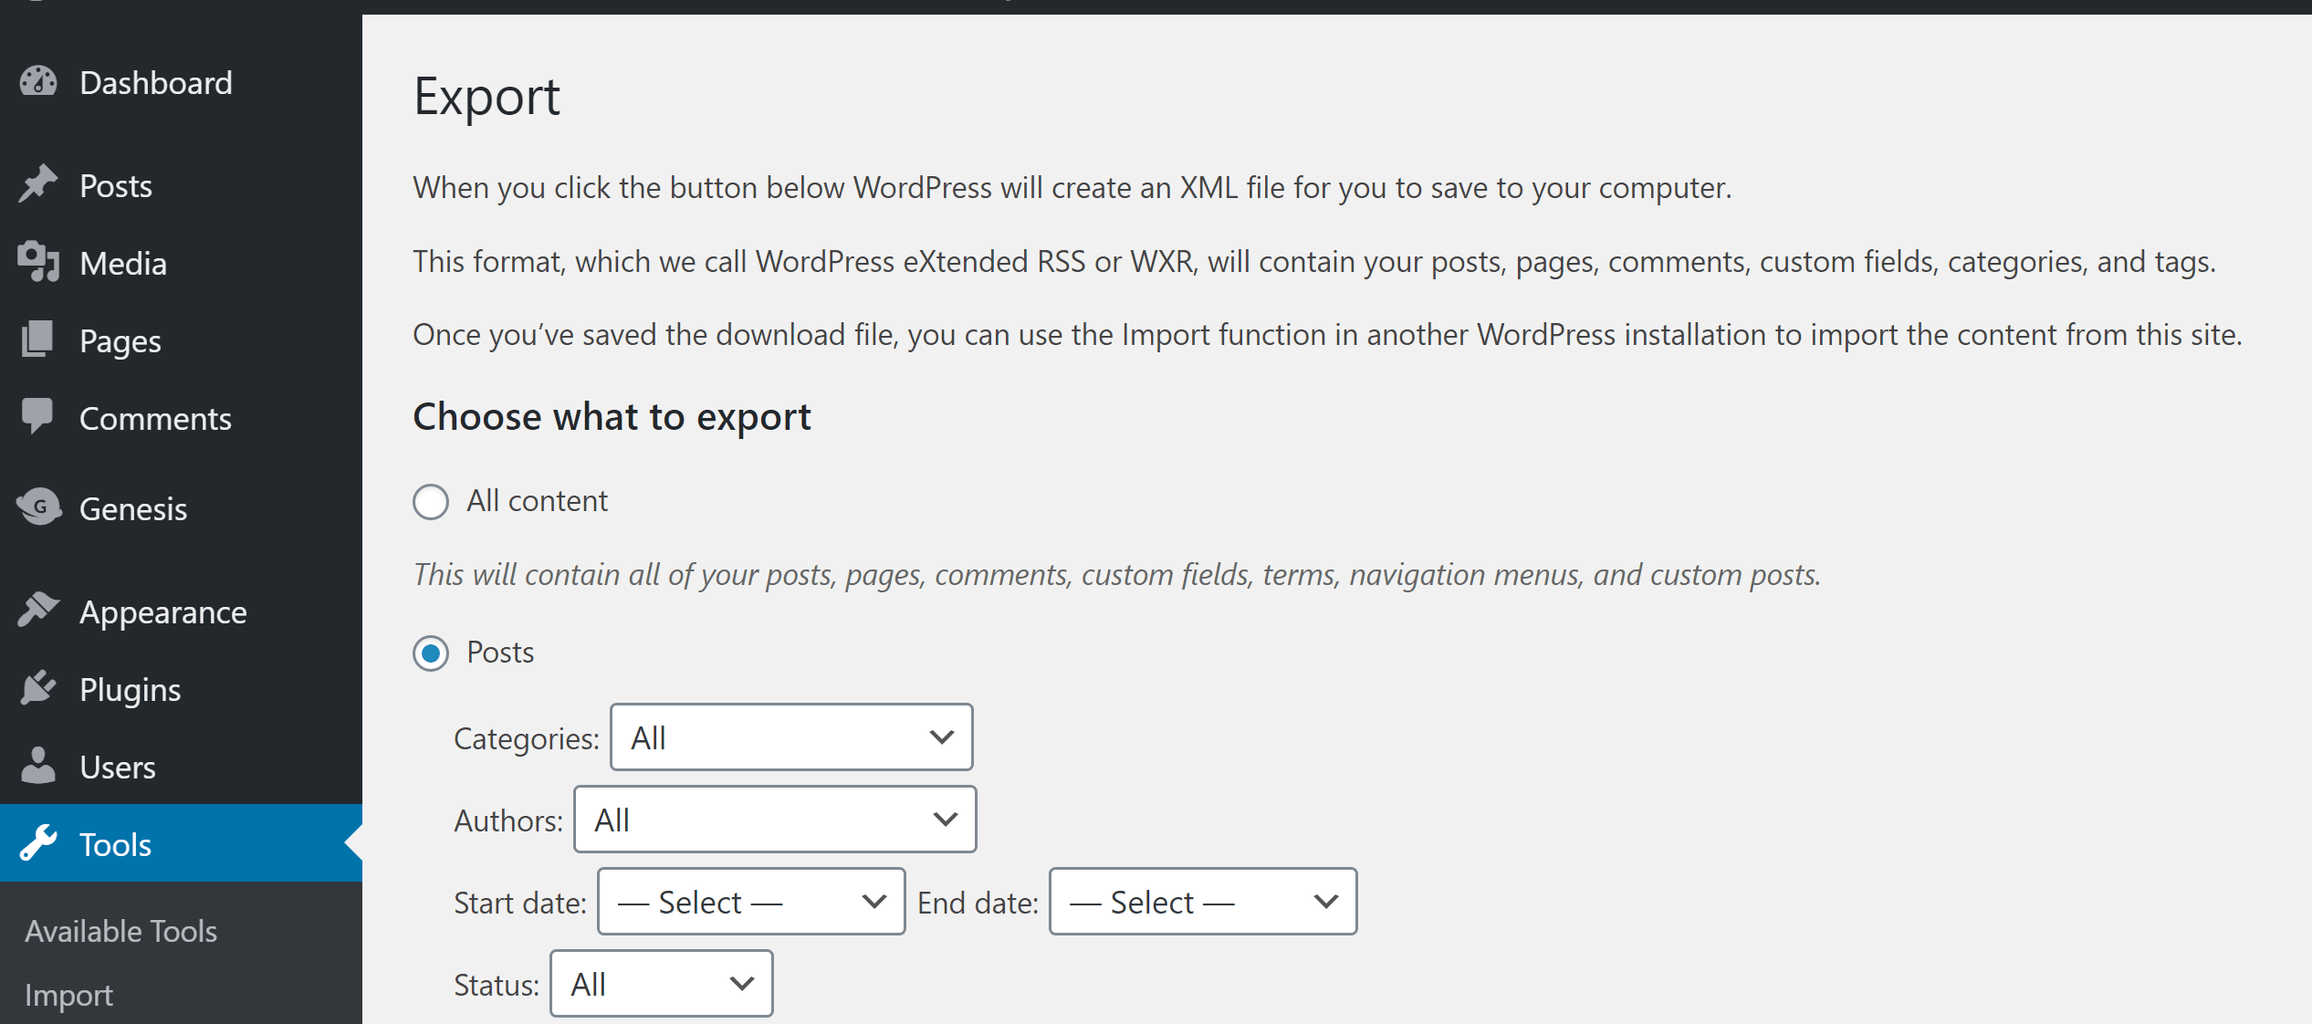 Using the WordPress export tool, create an XML file that contains all your posts.